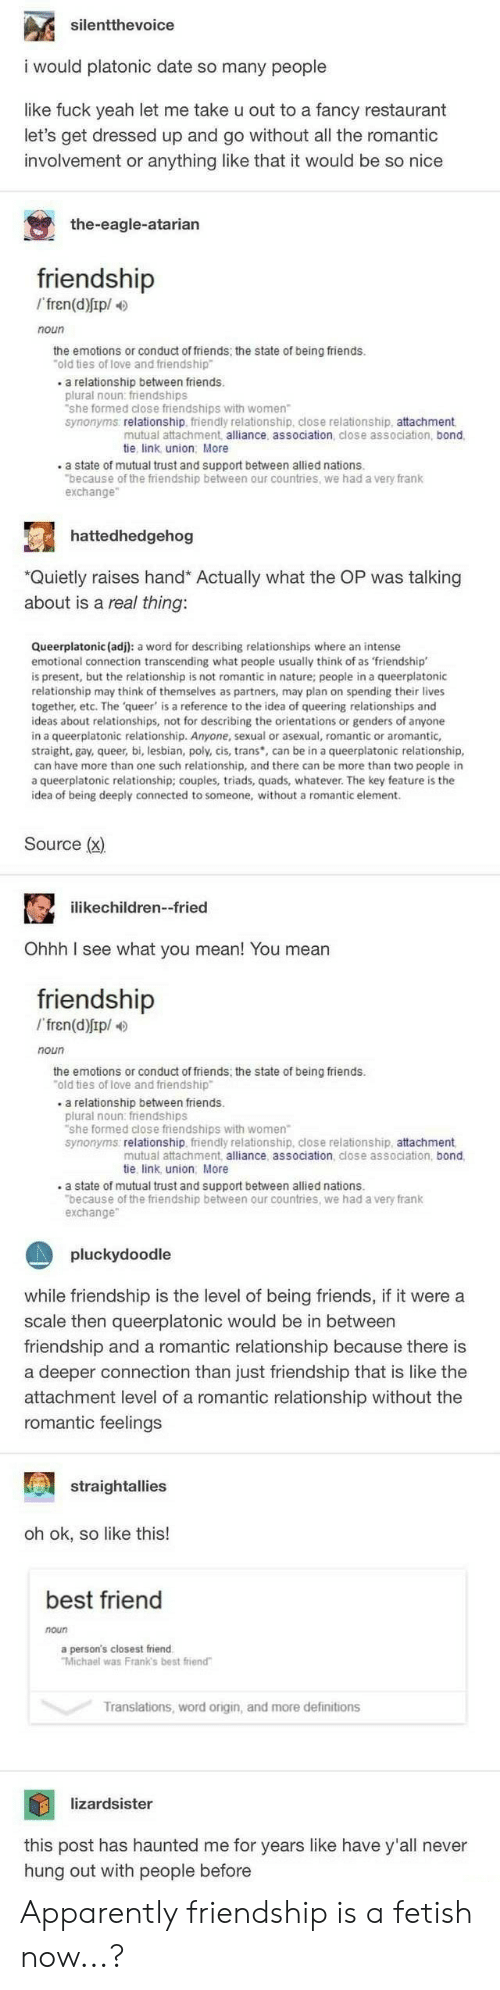 """Apparently, Best Friend, and Friends: silentthevoice  would platonic date so many people  like fuck yeah let me take u out to a fancy restaurant  let's get dressed up and go without all the romantic  involvement or anything like that it would be so nice  the-eagle-atarian  friendship  Ifren(d)Ip/  noun  the emotions or conduct of friends, the state of being friends.  """"old ties of love and friendship  a relationship between friends.  plural noun: friendships  """"she formed close friendships with women  synonyms relationship, friendly relationship, close relationship, attachment,  mutual attachment, alliance, association, close association, bond  tie, link union More  .a state of mutual trust and support between allied nations.  """"because of the friendship between our countries, we had a very frank  exchange  hattedhedgehog  *Quietly raises hand* Actually what the OP was talking  about is a real thing:  Queerplatonic (adj): a word for describing relationships where an intense  emotional connection transcending what people usually think of as 'friendship  is present, but the relationship is not romantic in nature; people  relationship may think of themselves as partners, may plan on spending their lives  together, etc. The 'queer' is a reference to the idea of queering relationships and  ideas about relationships, not for describing the orientations or genders of anyone  in a queerplatonic relationship. Anyone, sexual or asexual, romantic or aromantic,  straight, gay, queer, bi, lesbian, poly, cis, trans, can be in a queerplatonic relationship,  can have more than one such relationship, and there can be more than two people in  a queerplatonic relationship; couples, triads, quads, whatever. The key feature is the  idea of being deeply connected to someone, without a romantic element.  a queerplatonic  Source (x)  ilikechildren--fried  Ohhh I see what you mean! You mean  friendship  fren(d)Ip/  noun  the emotions or conduct of friends; the state of being friends.  """"old tie"""